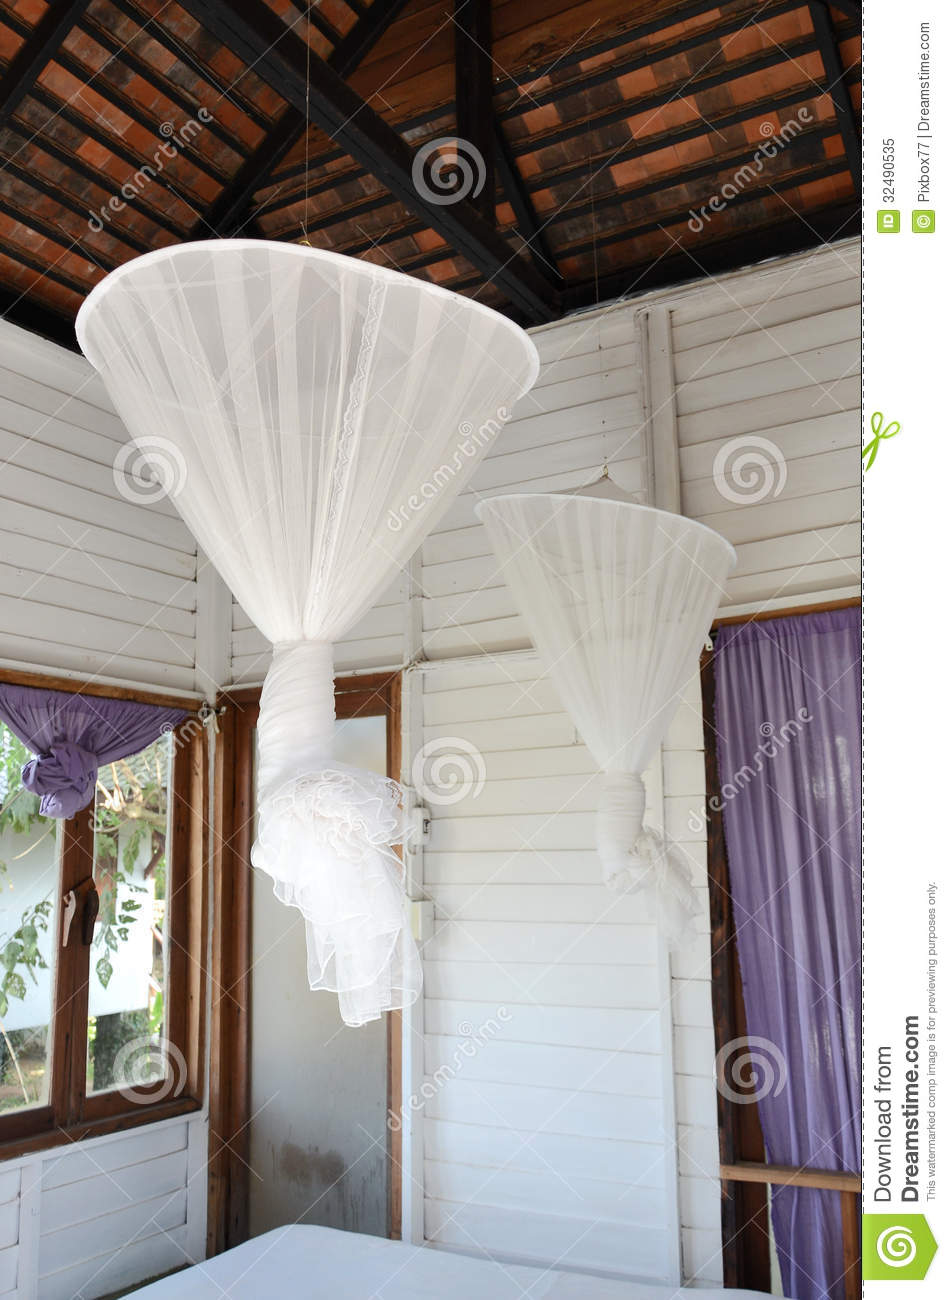 Hanging Mosquito Net Inside Bedroom Royalty Free Stock